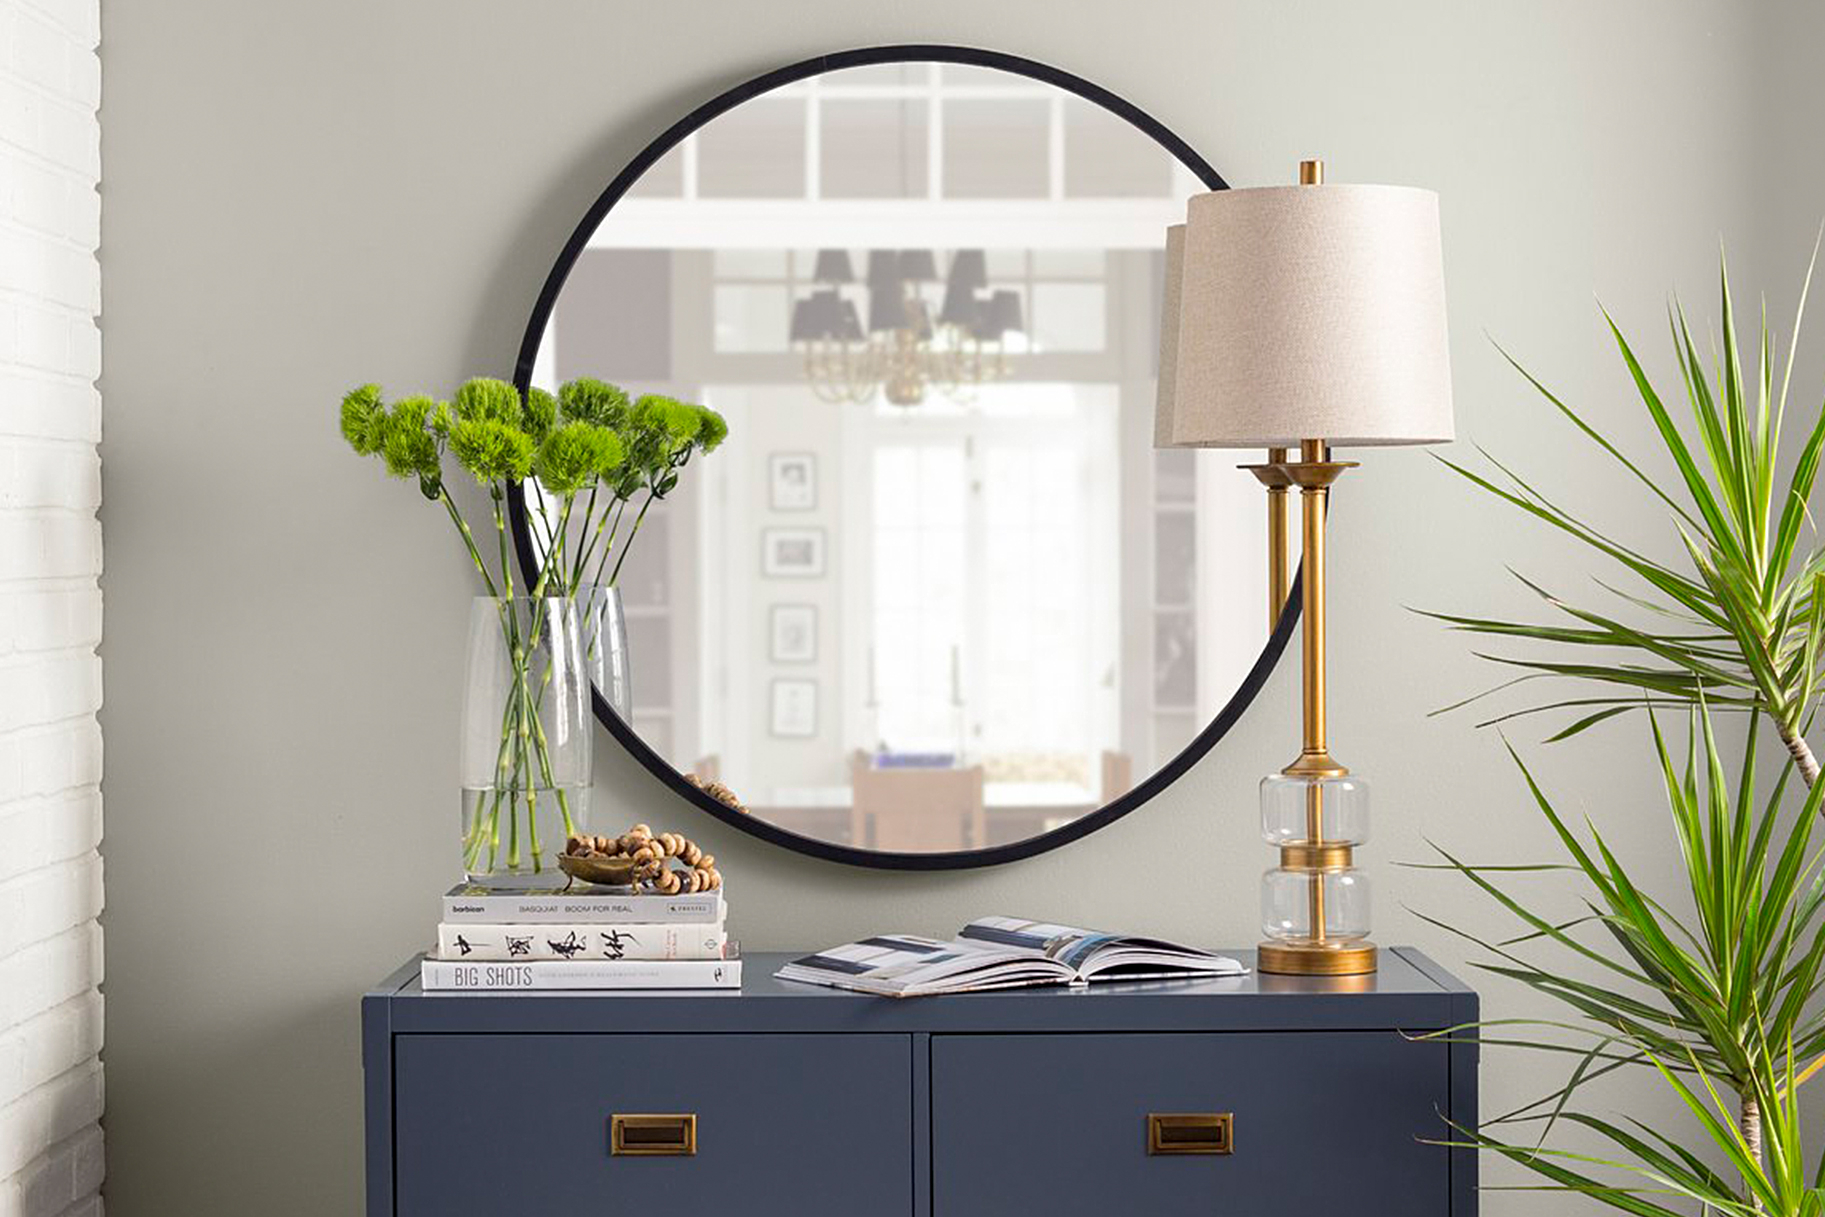 Best Entryway Mirrors: Stylish Hall Mirror Ideas For Entry with Rhein Accent Mirrors (Image 9 of 30)